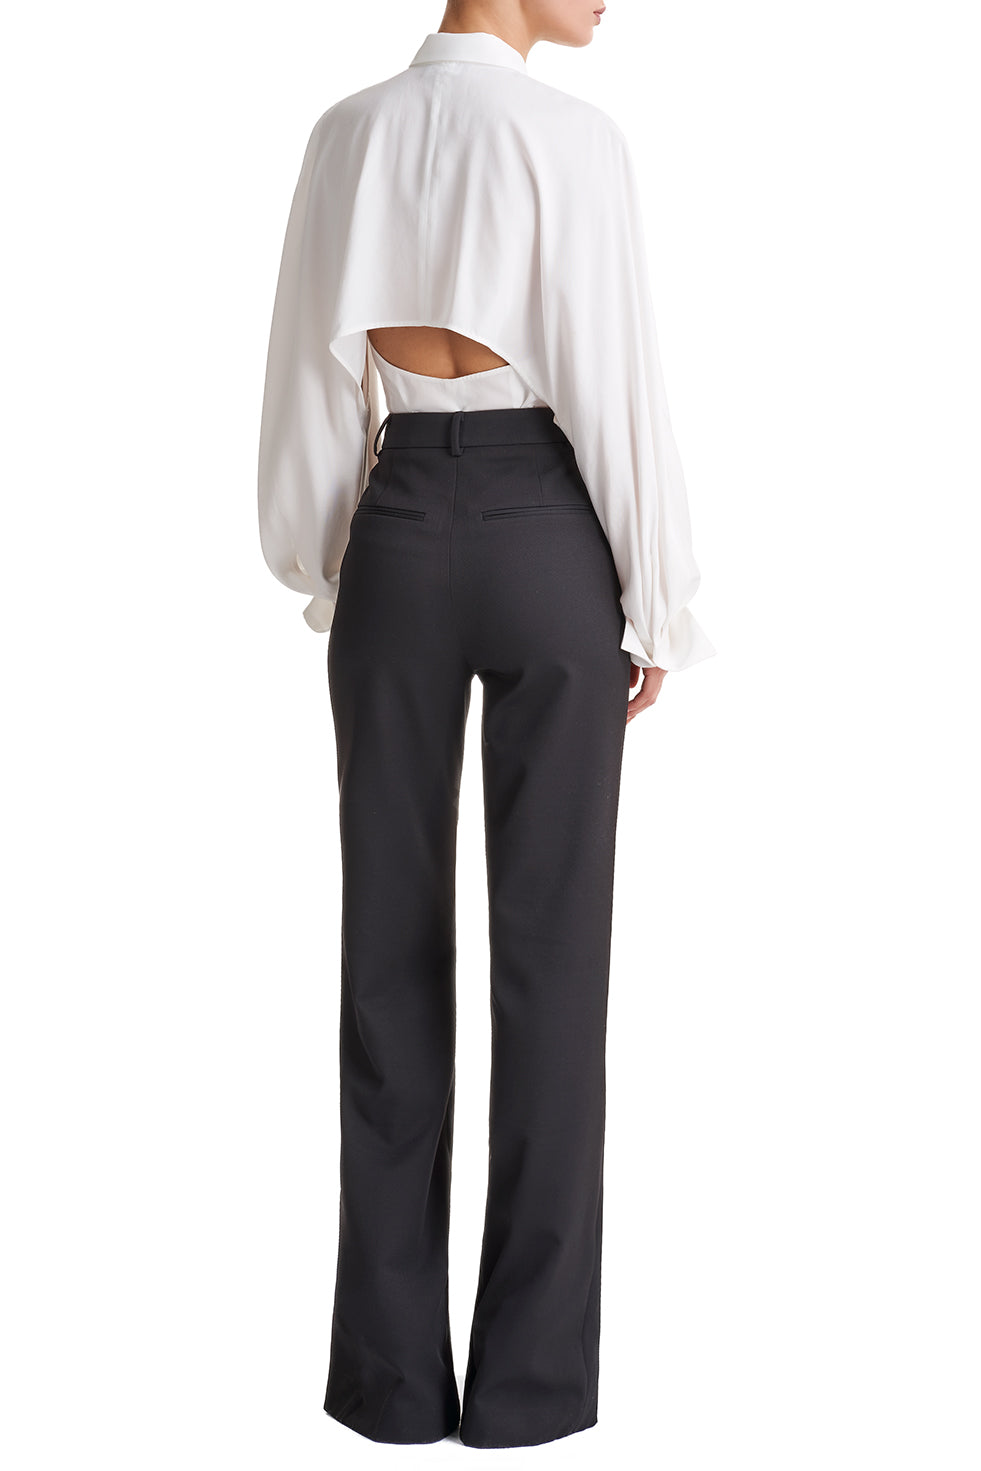 Sienna Wide Leg Button Trousers